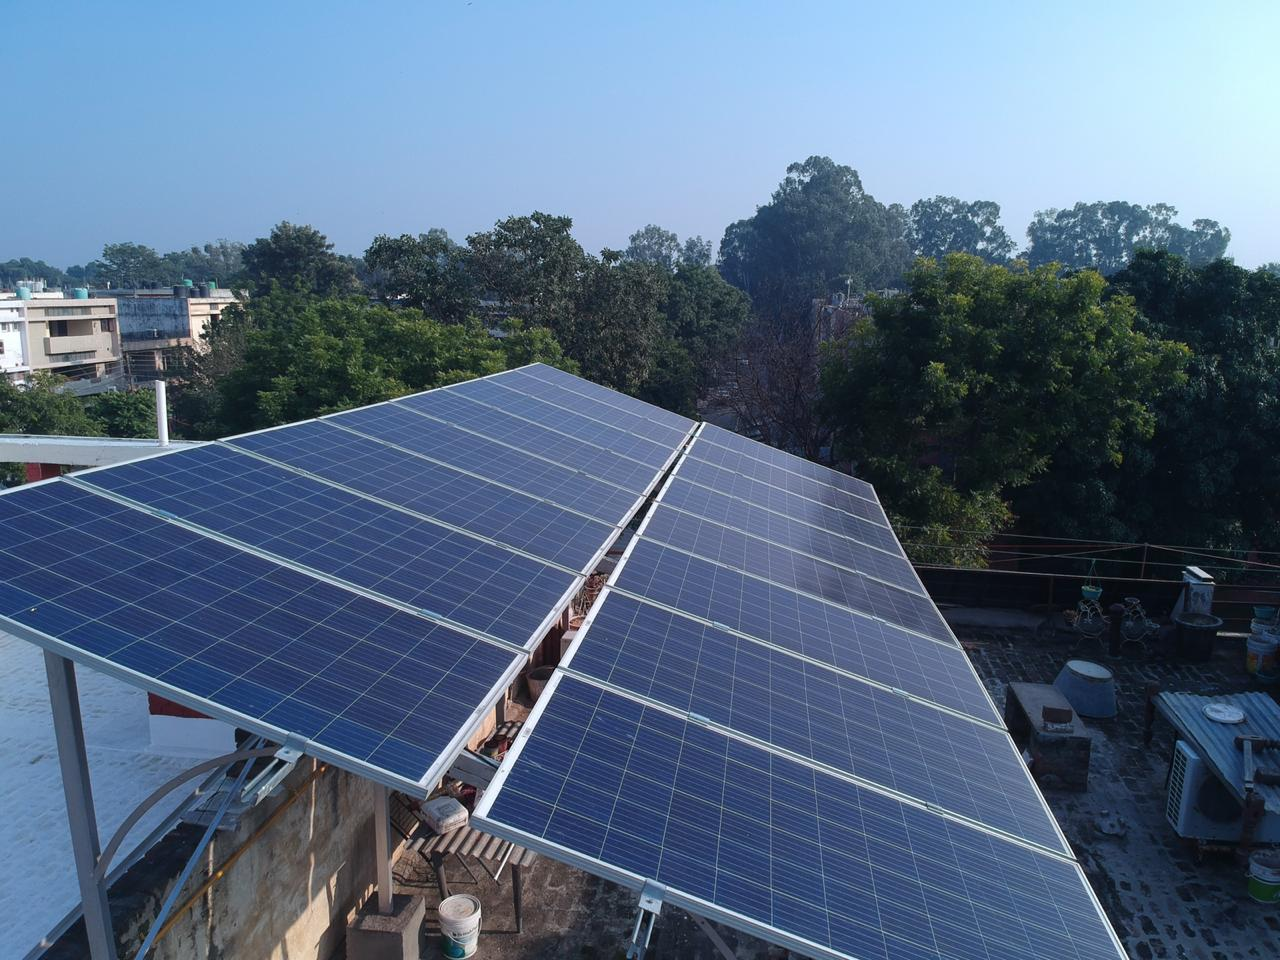 Adopt Multipronged Approach to Kick Off Rapid Growth in Residential Rooftop Solar